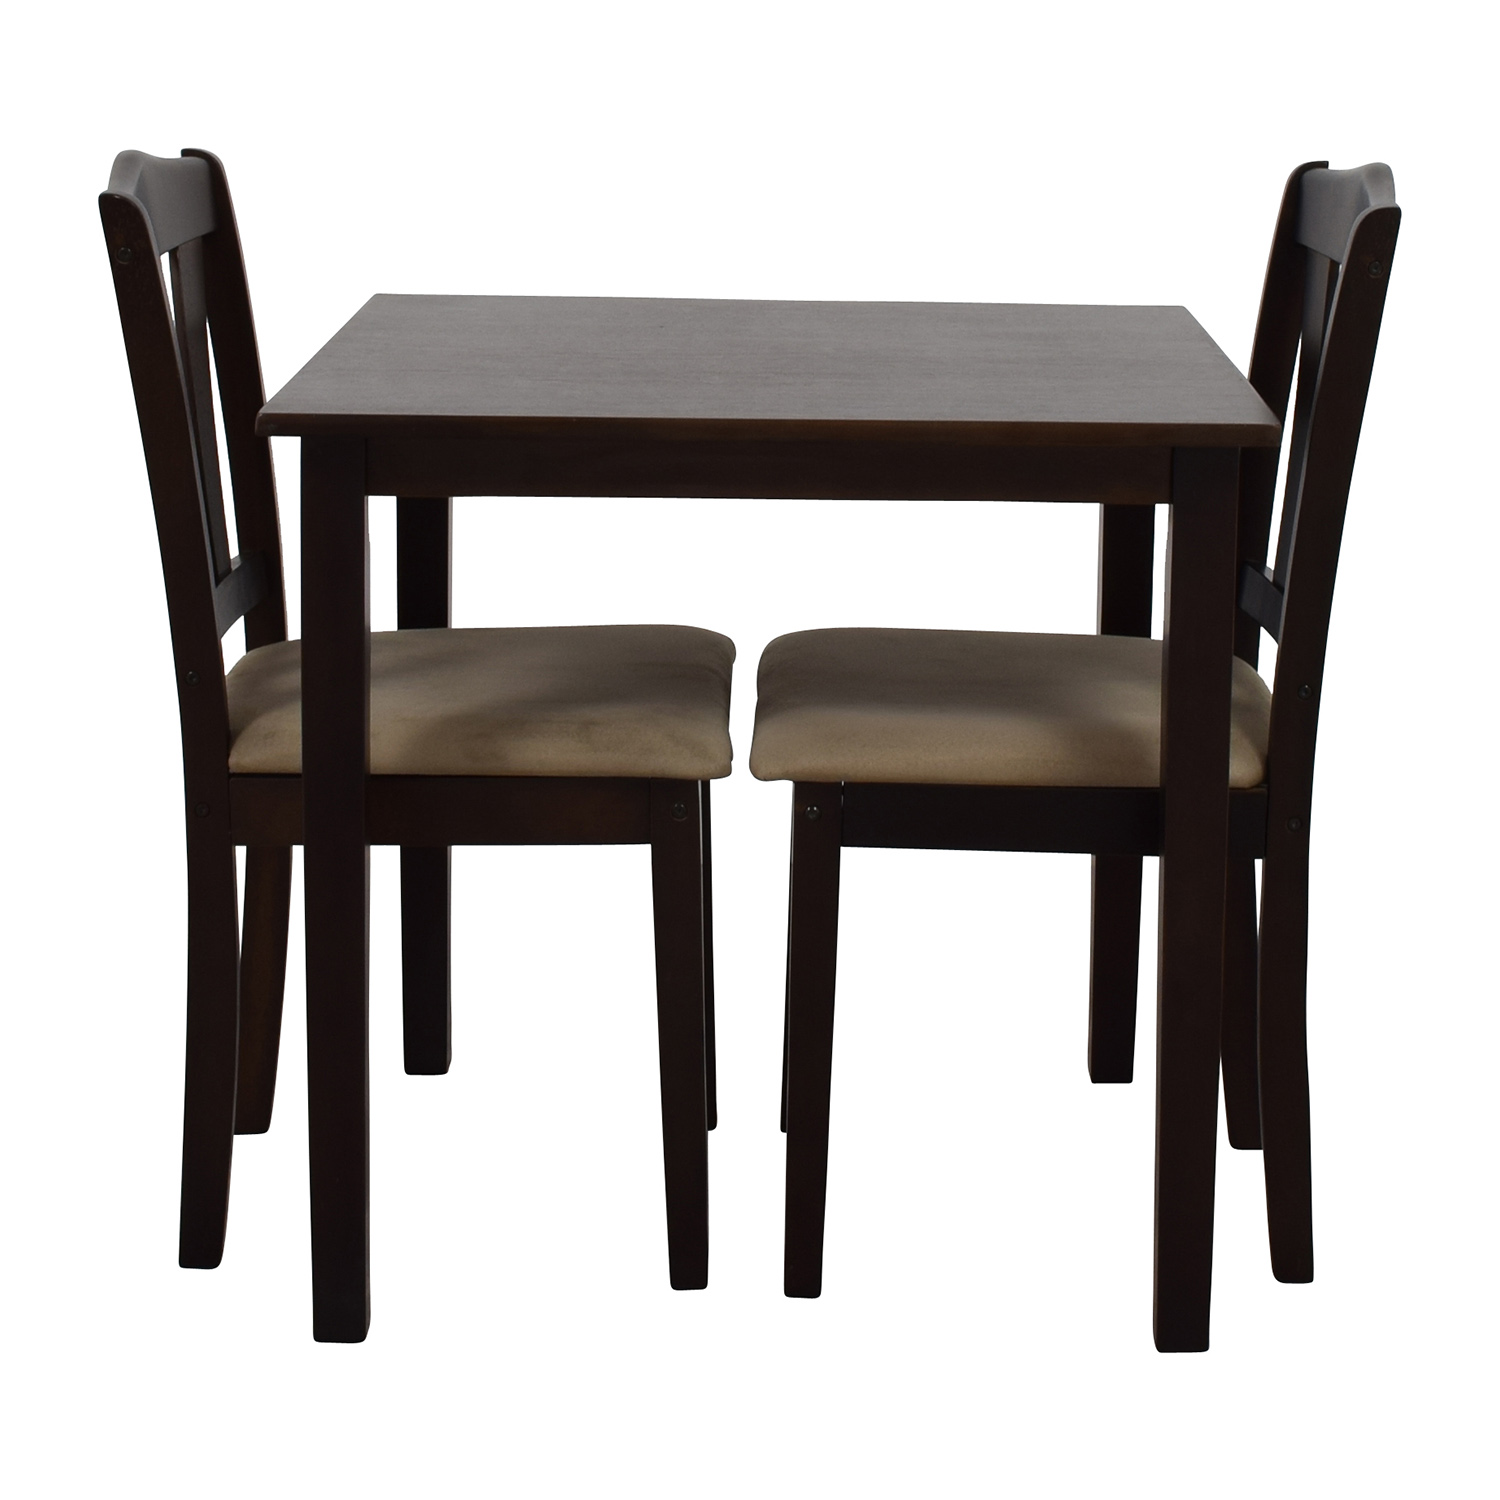 buy  Wood Dining Table and Beige Upholstered Chairs online